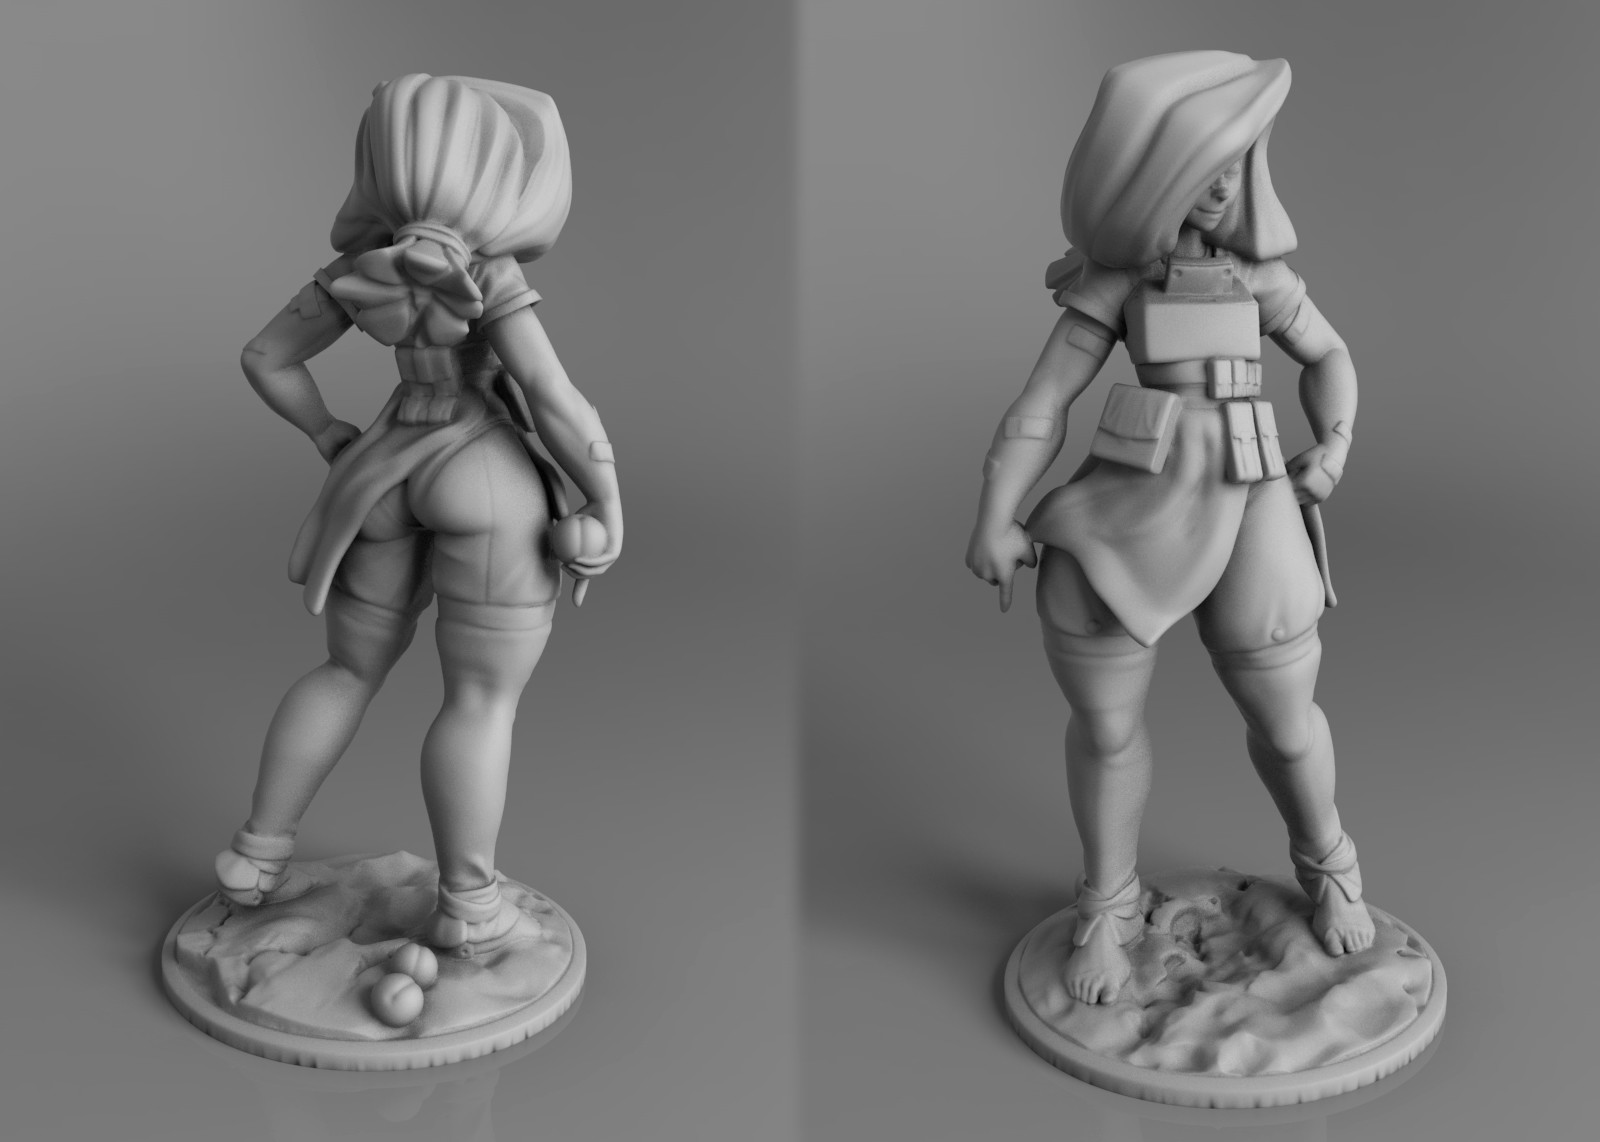 One of the things I wanted to do, is also make this print ready, so here's a quick mock up of the air tight model